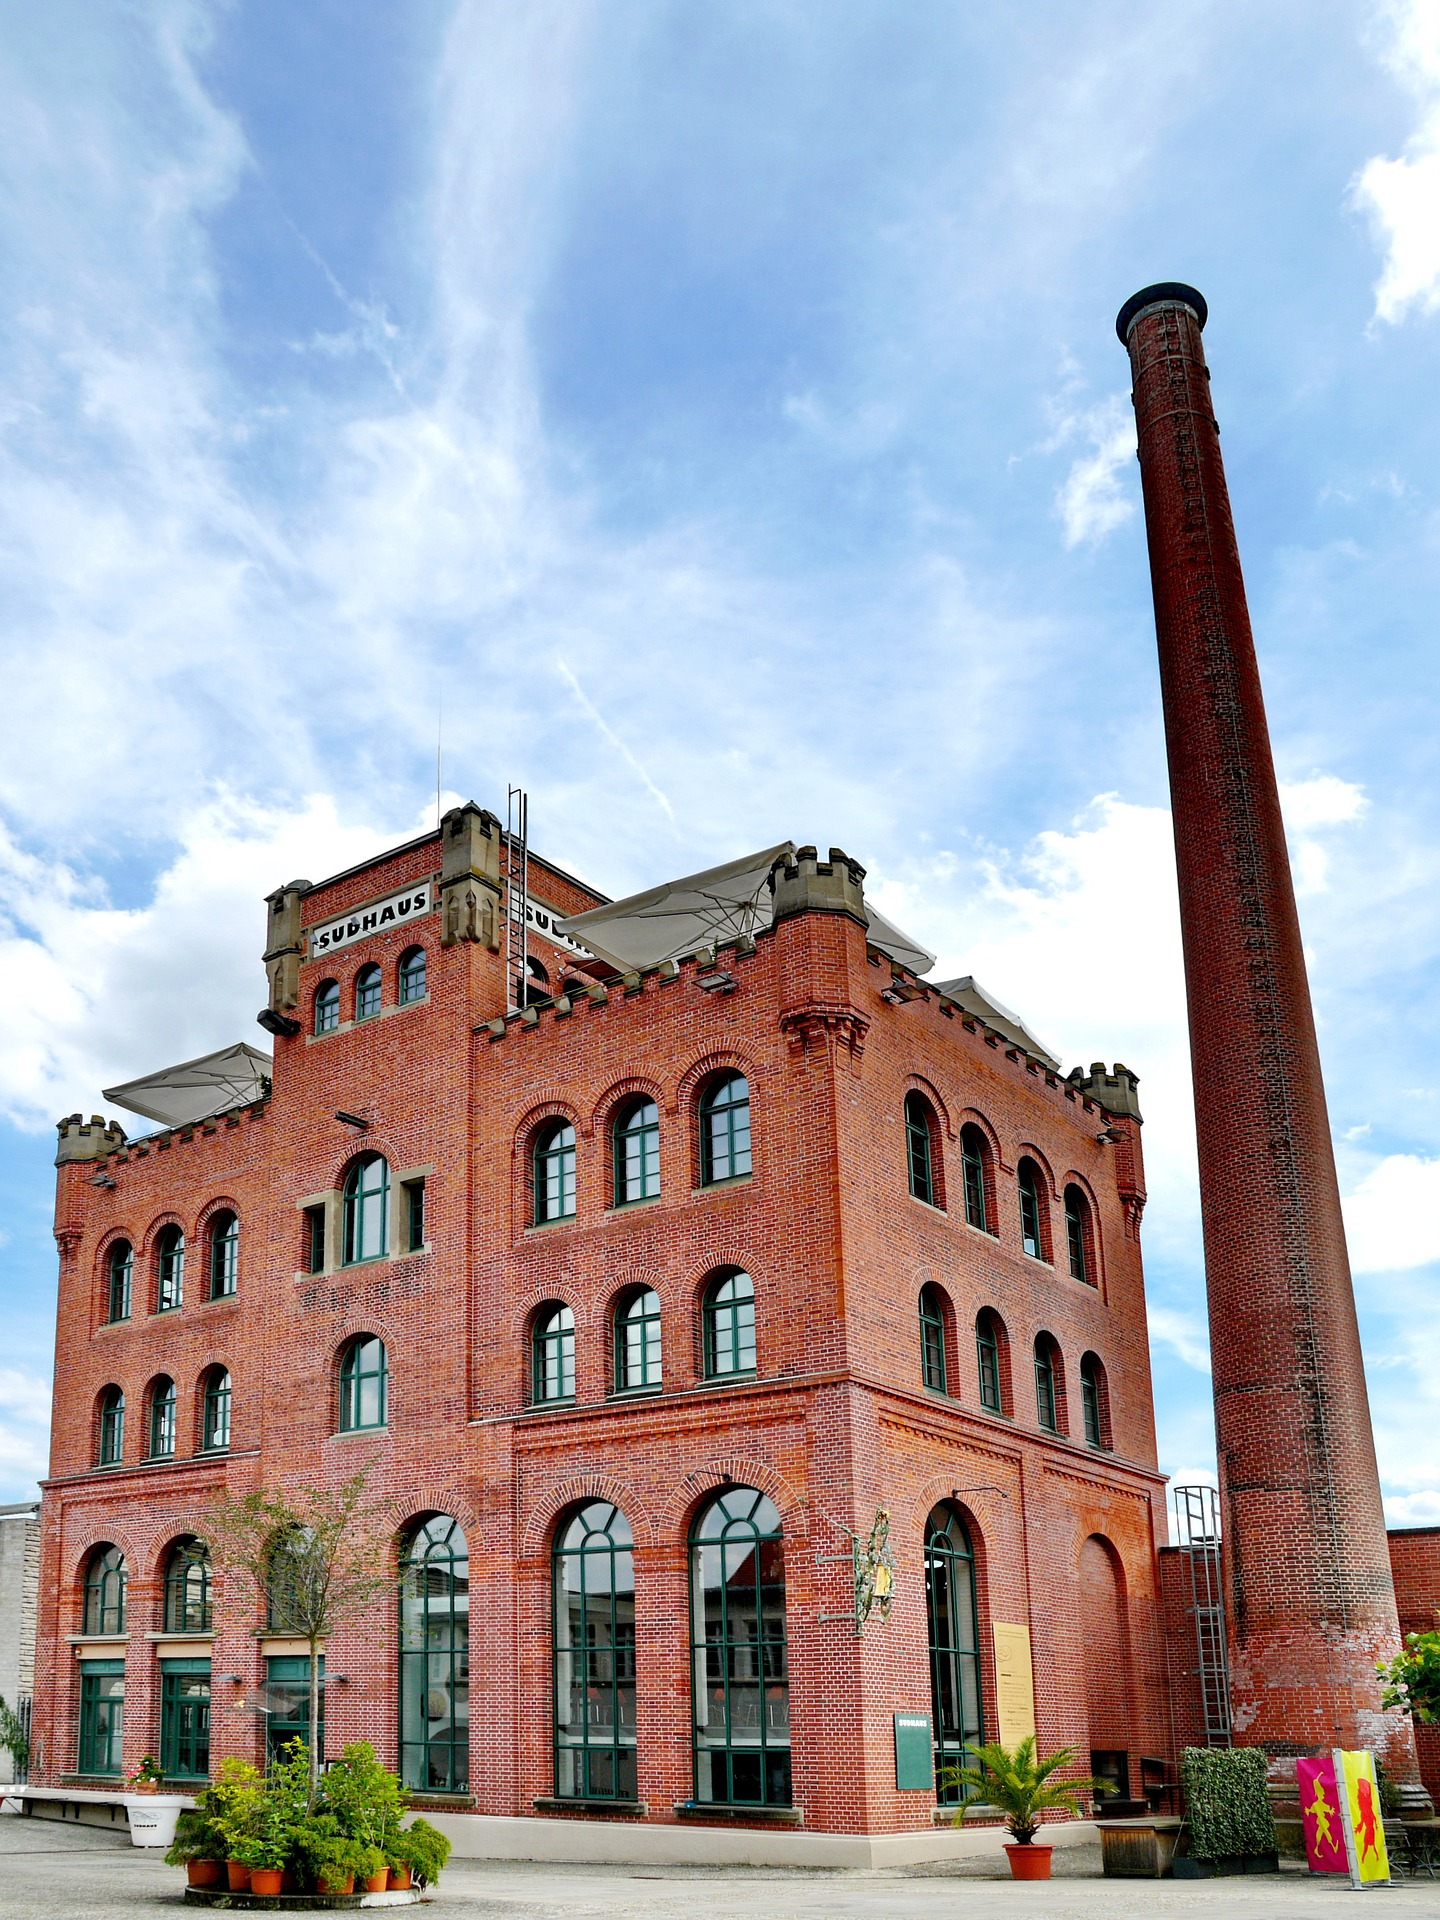 brewhouse-2119086_1920